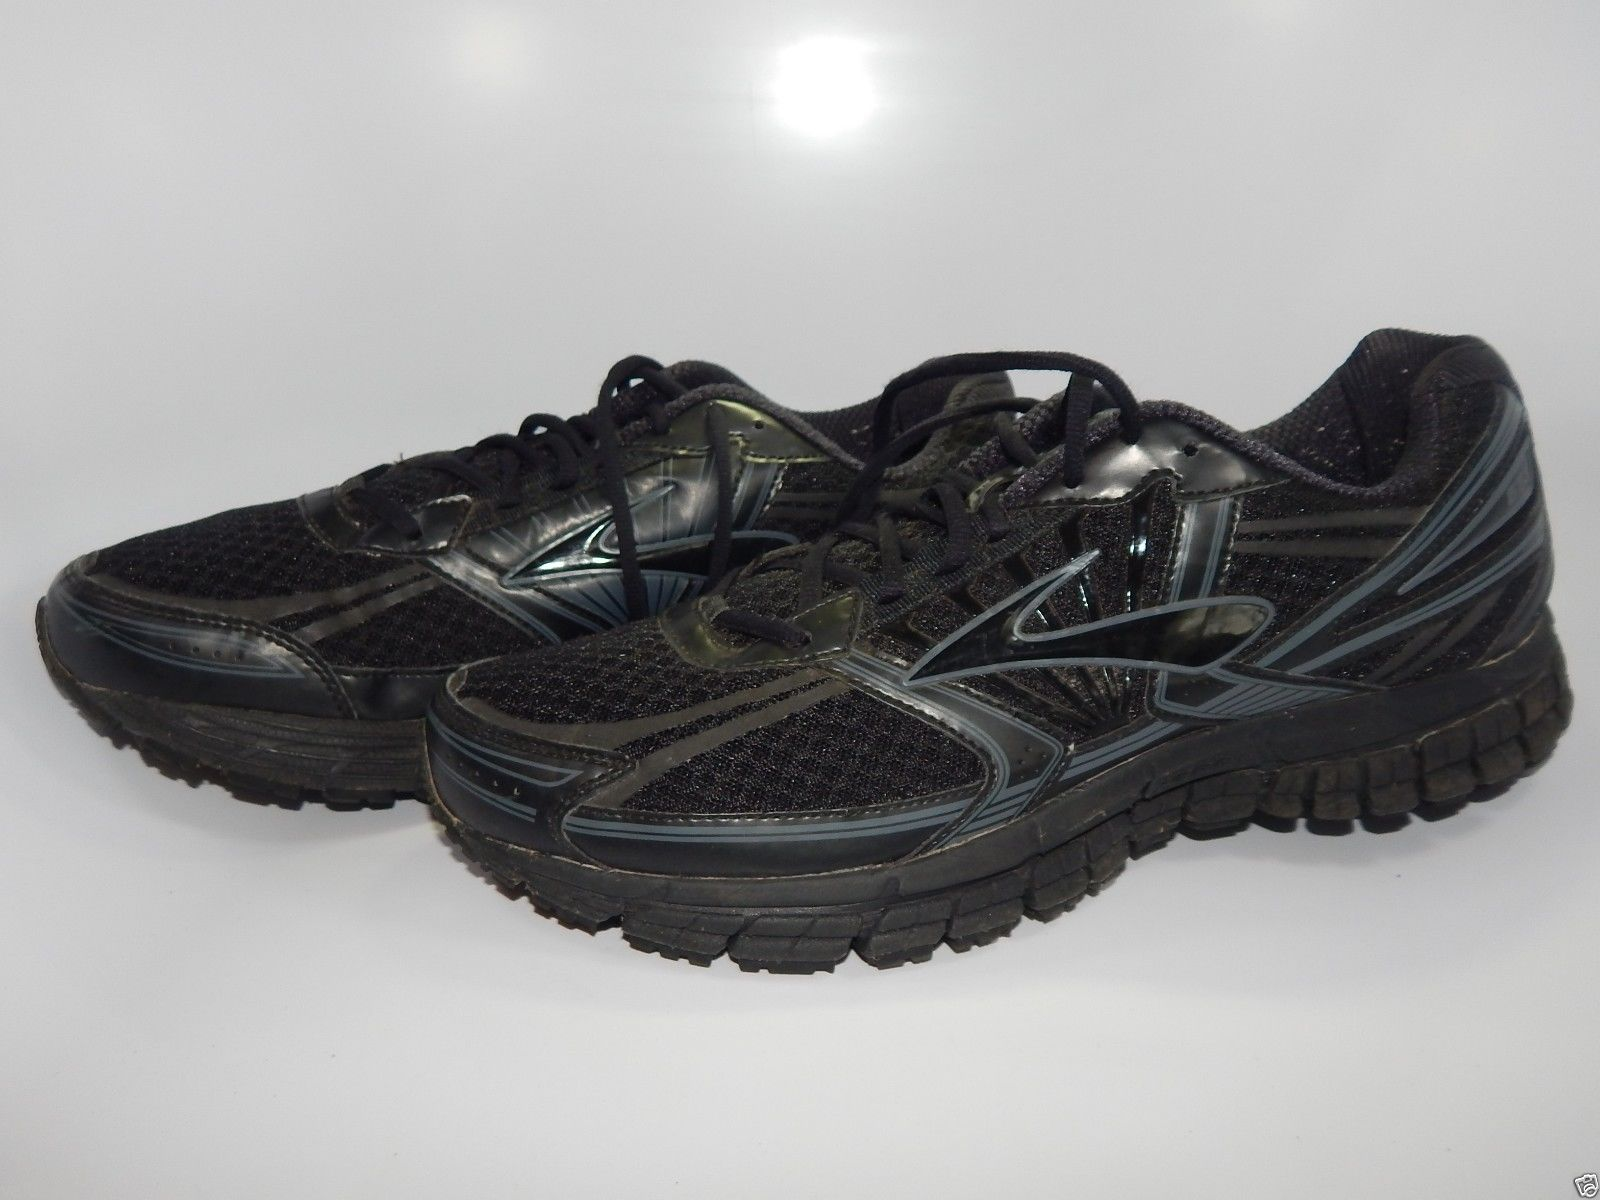 BROOKS ADRENALINE GTS 14 MENS RUNNING SHOES SIZE US 13 M EU 47.5 1101581D900